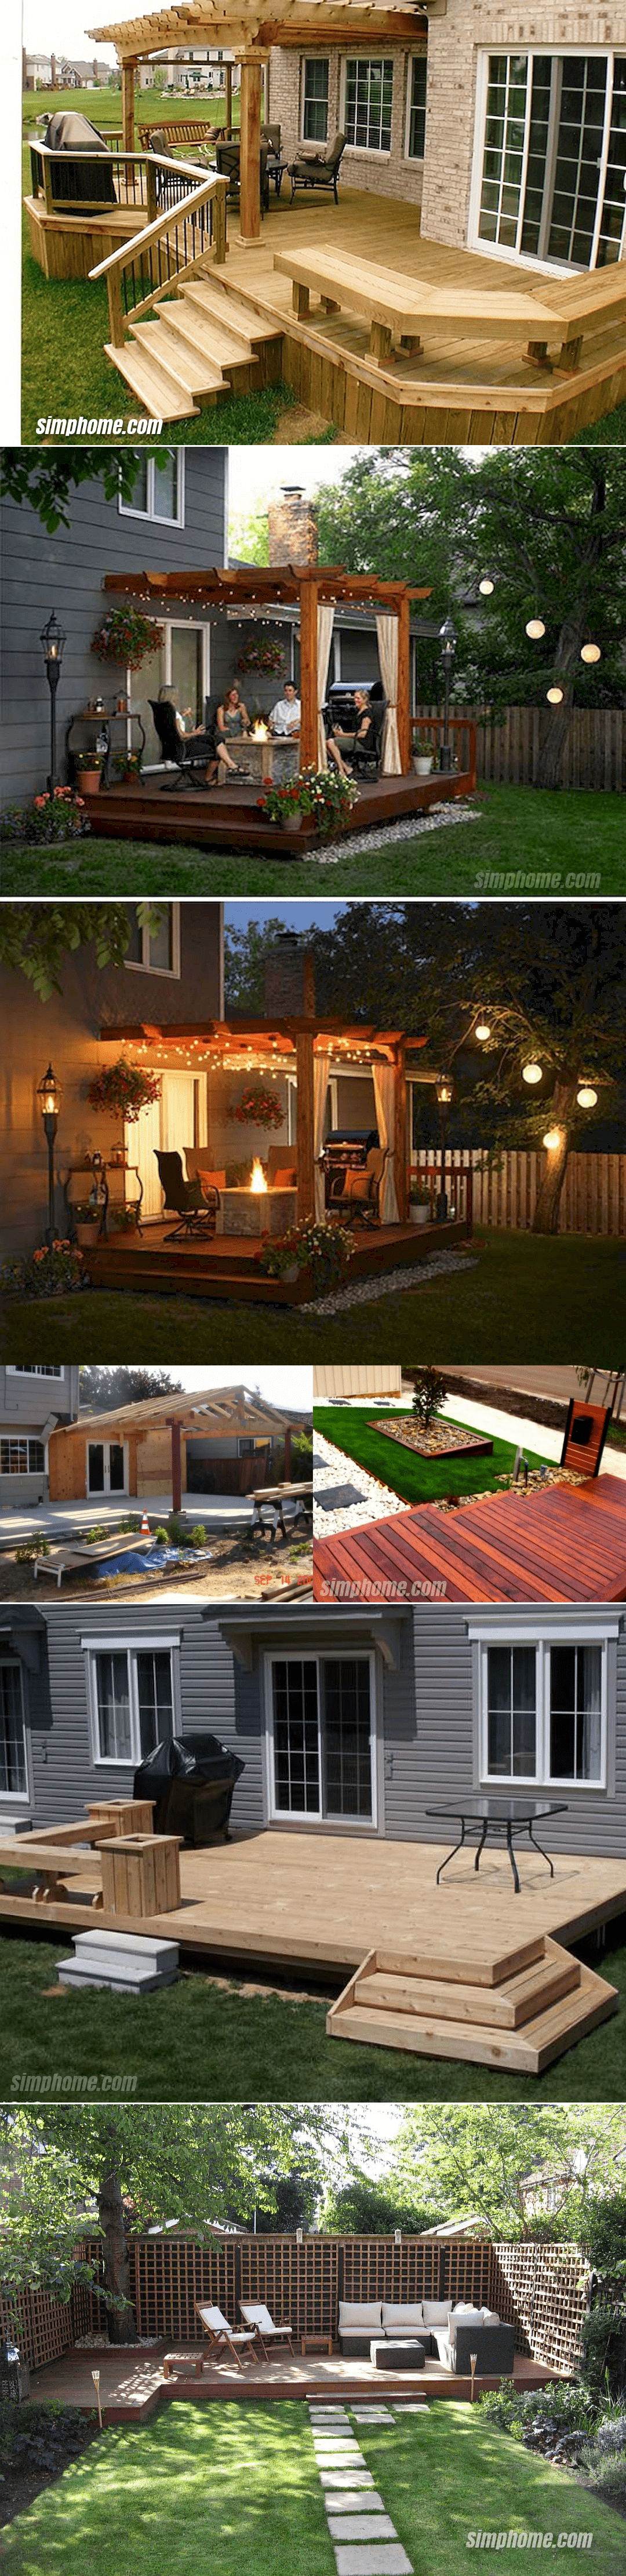 11.SIMPHOME.COM 10 Ways how to improve backyard deck ideas